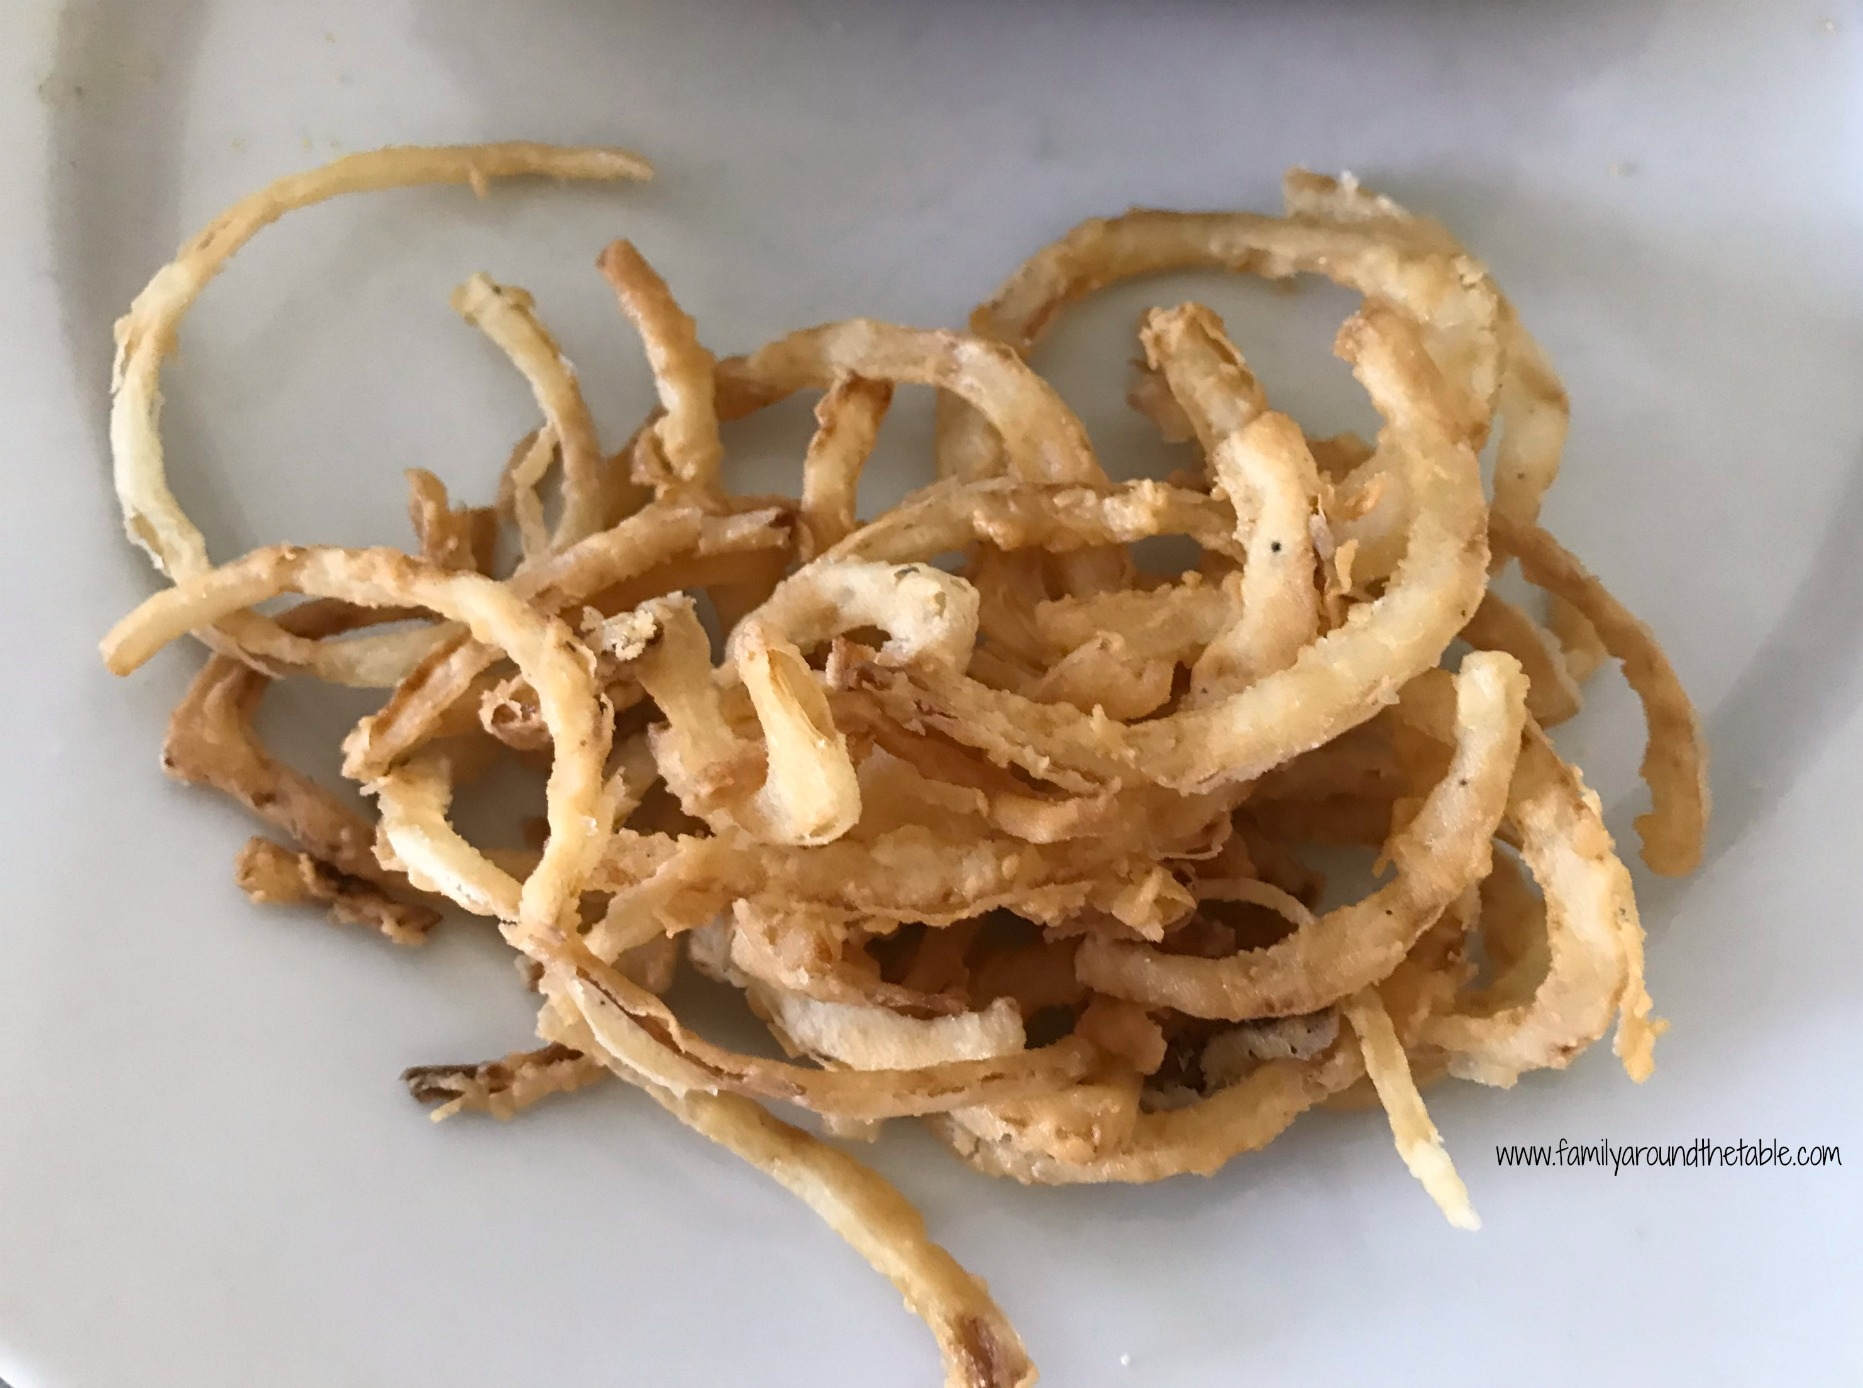 Fried onion straws just like you find in restaurants.